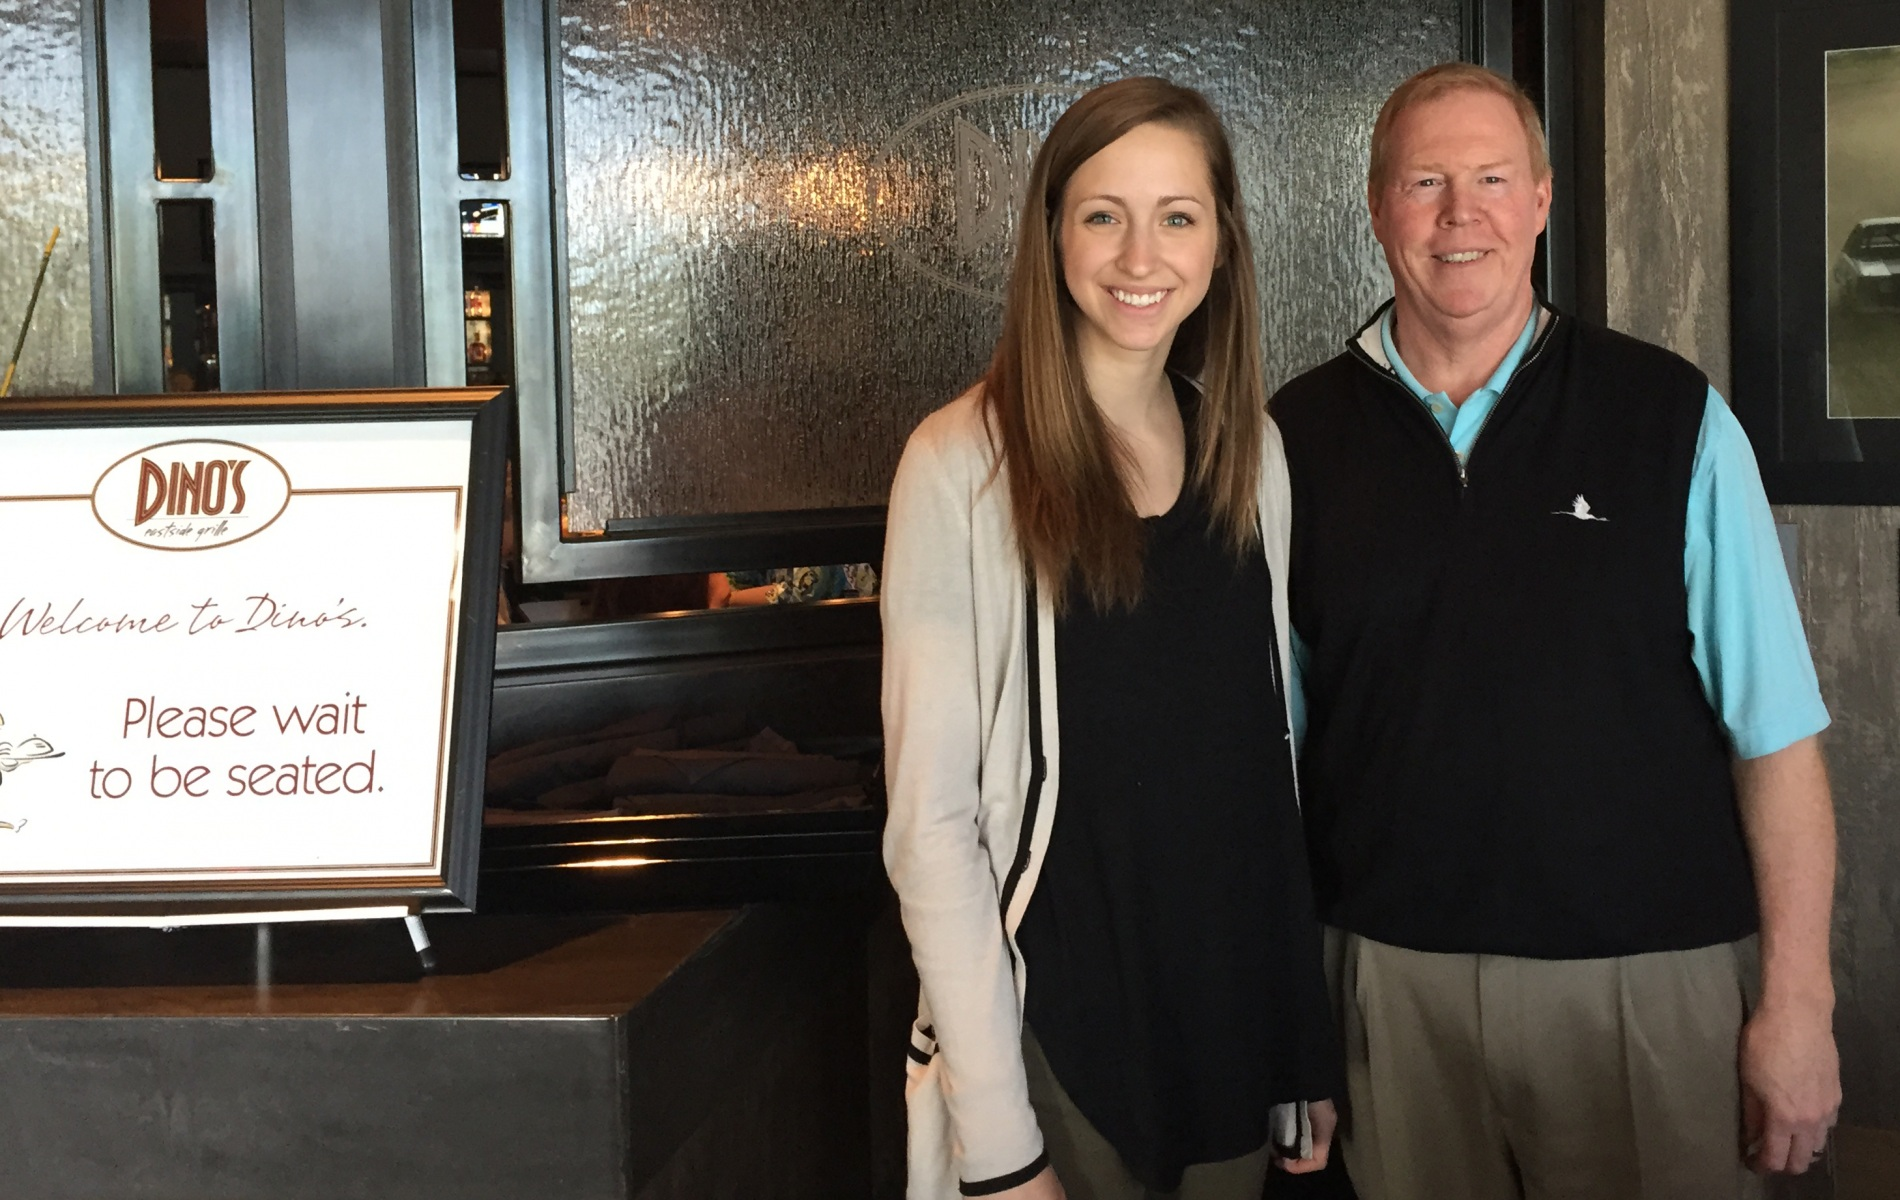 hospitality restaurant tourism management college of hrtm student lori matzke worked lincoln restaurant owner dean hart on a menu review project as part of an advanced food and beverage class